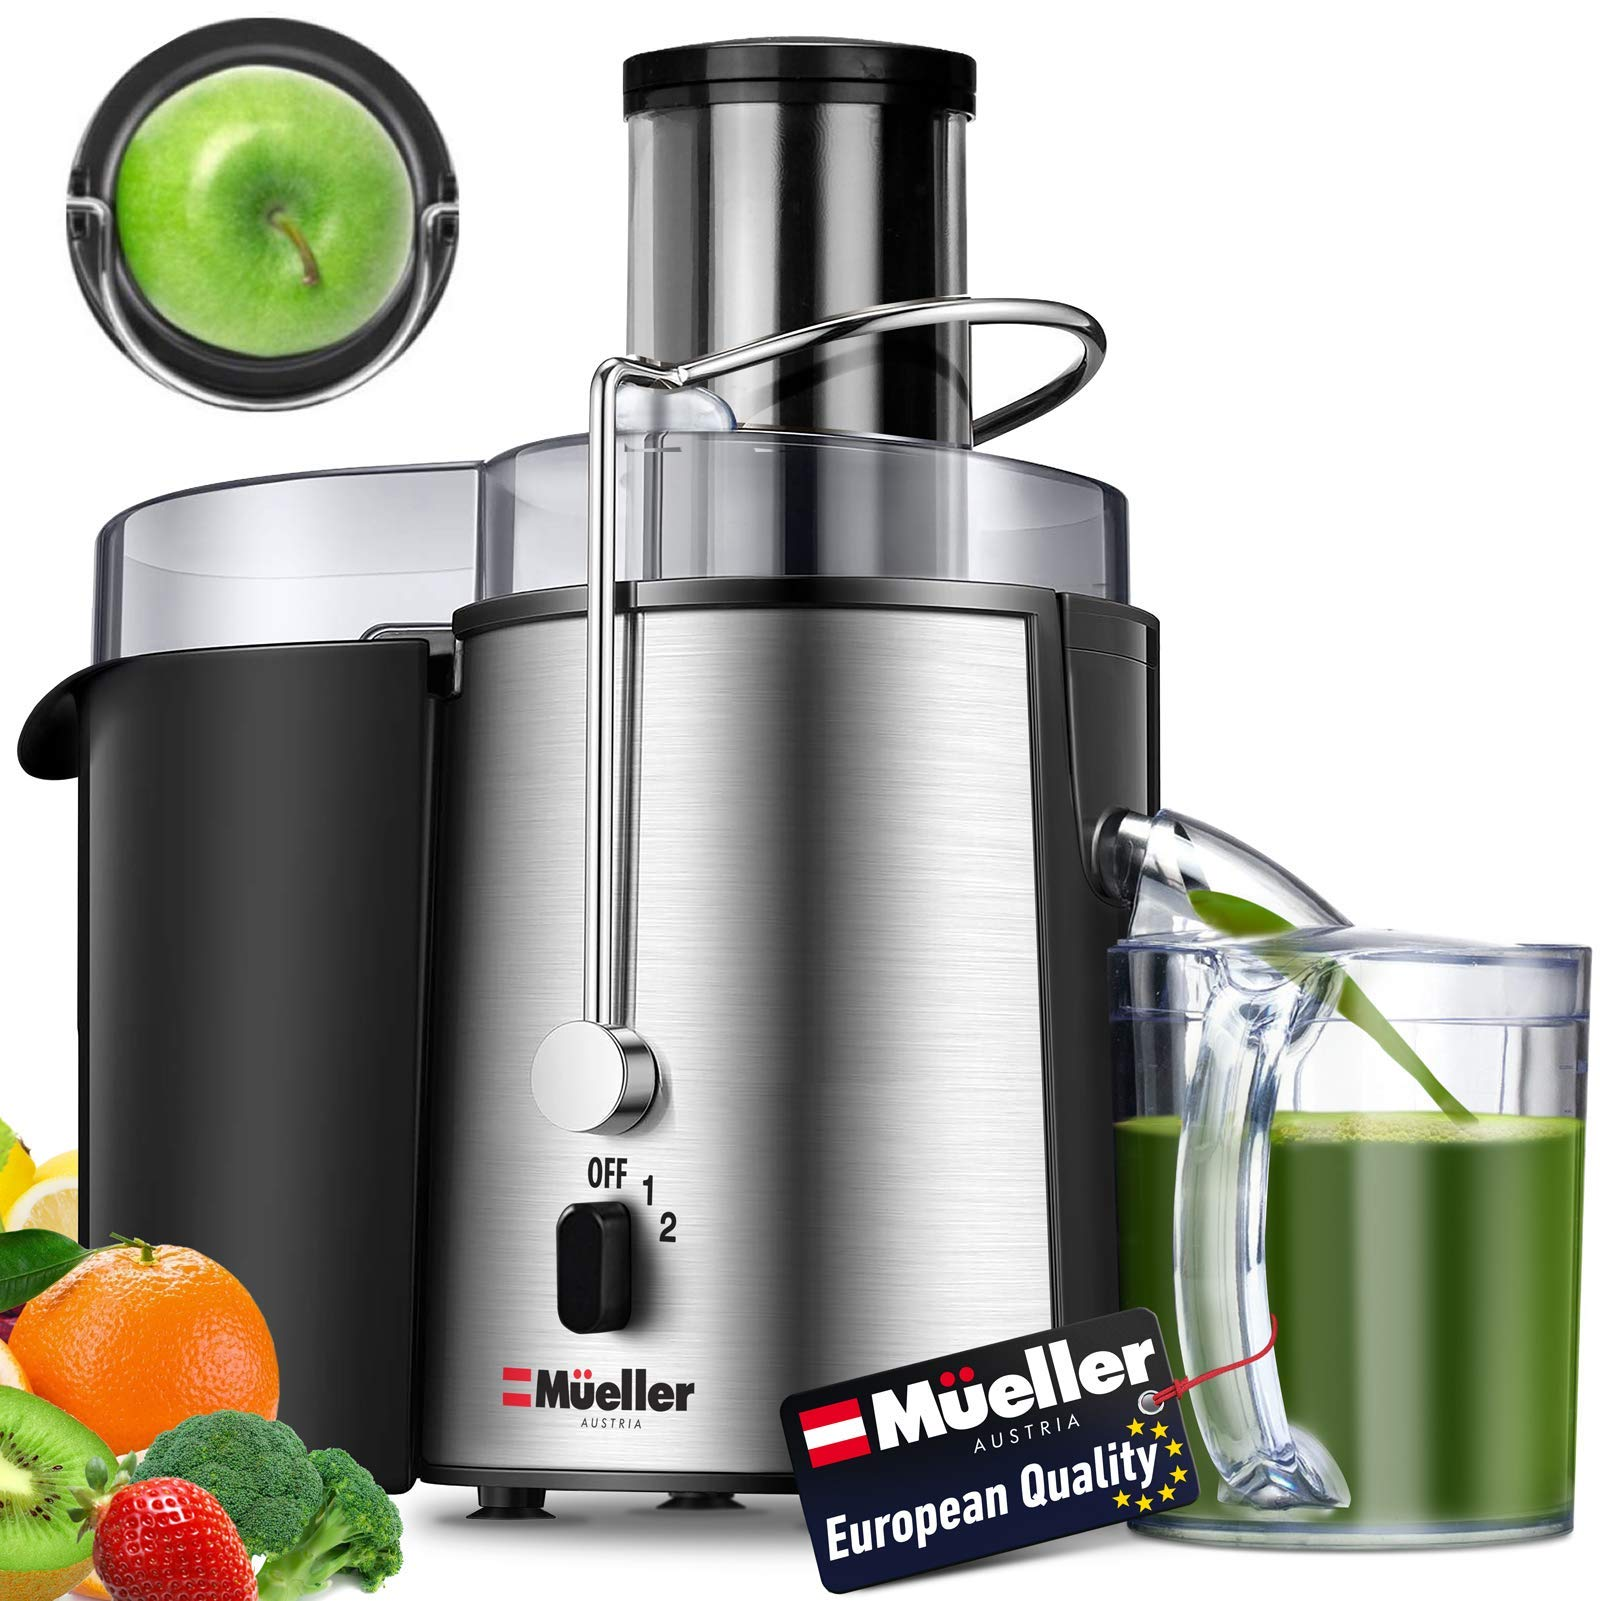 "Mueller Austria Juicer Ultra Power, Easy Clean Extractor Press Centrifugal Juicing Machine, Wide 3"" Feed Chute for Whole Fruit Vegetable, Anti-drip, High Quality, Large, Silver"